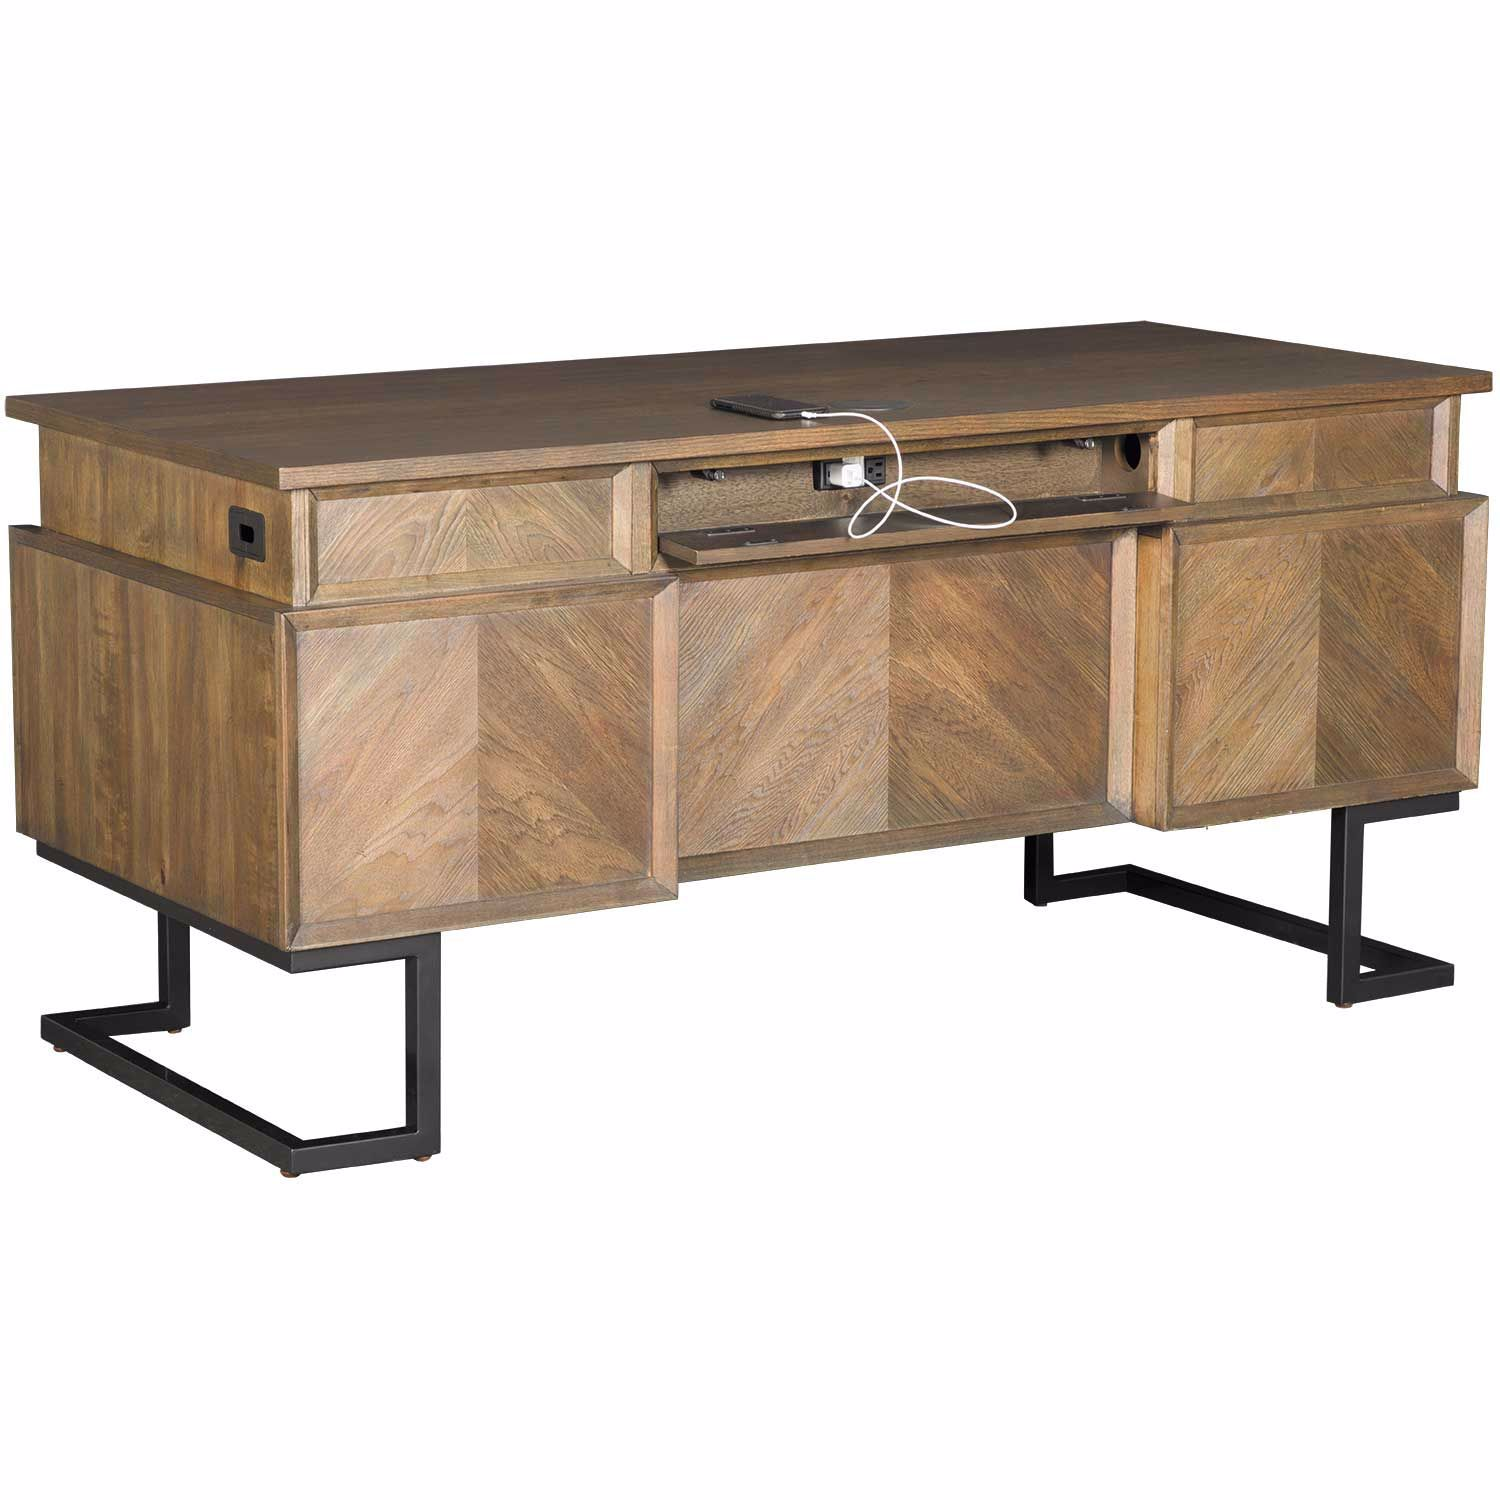 "Picture of Harper Point 66"" Executive Desk"